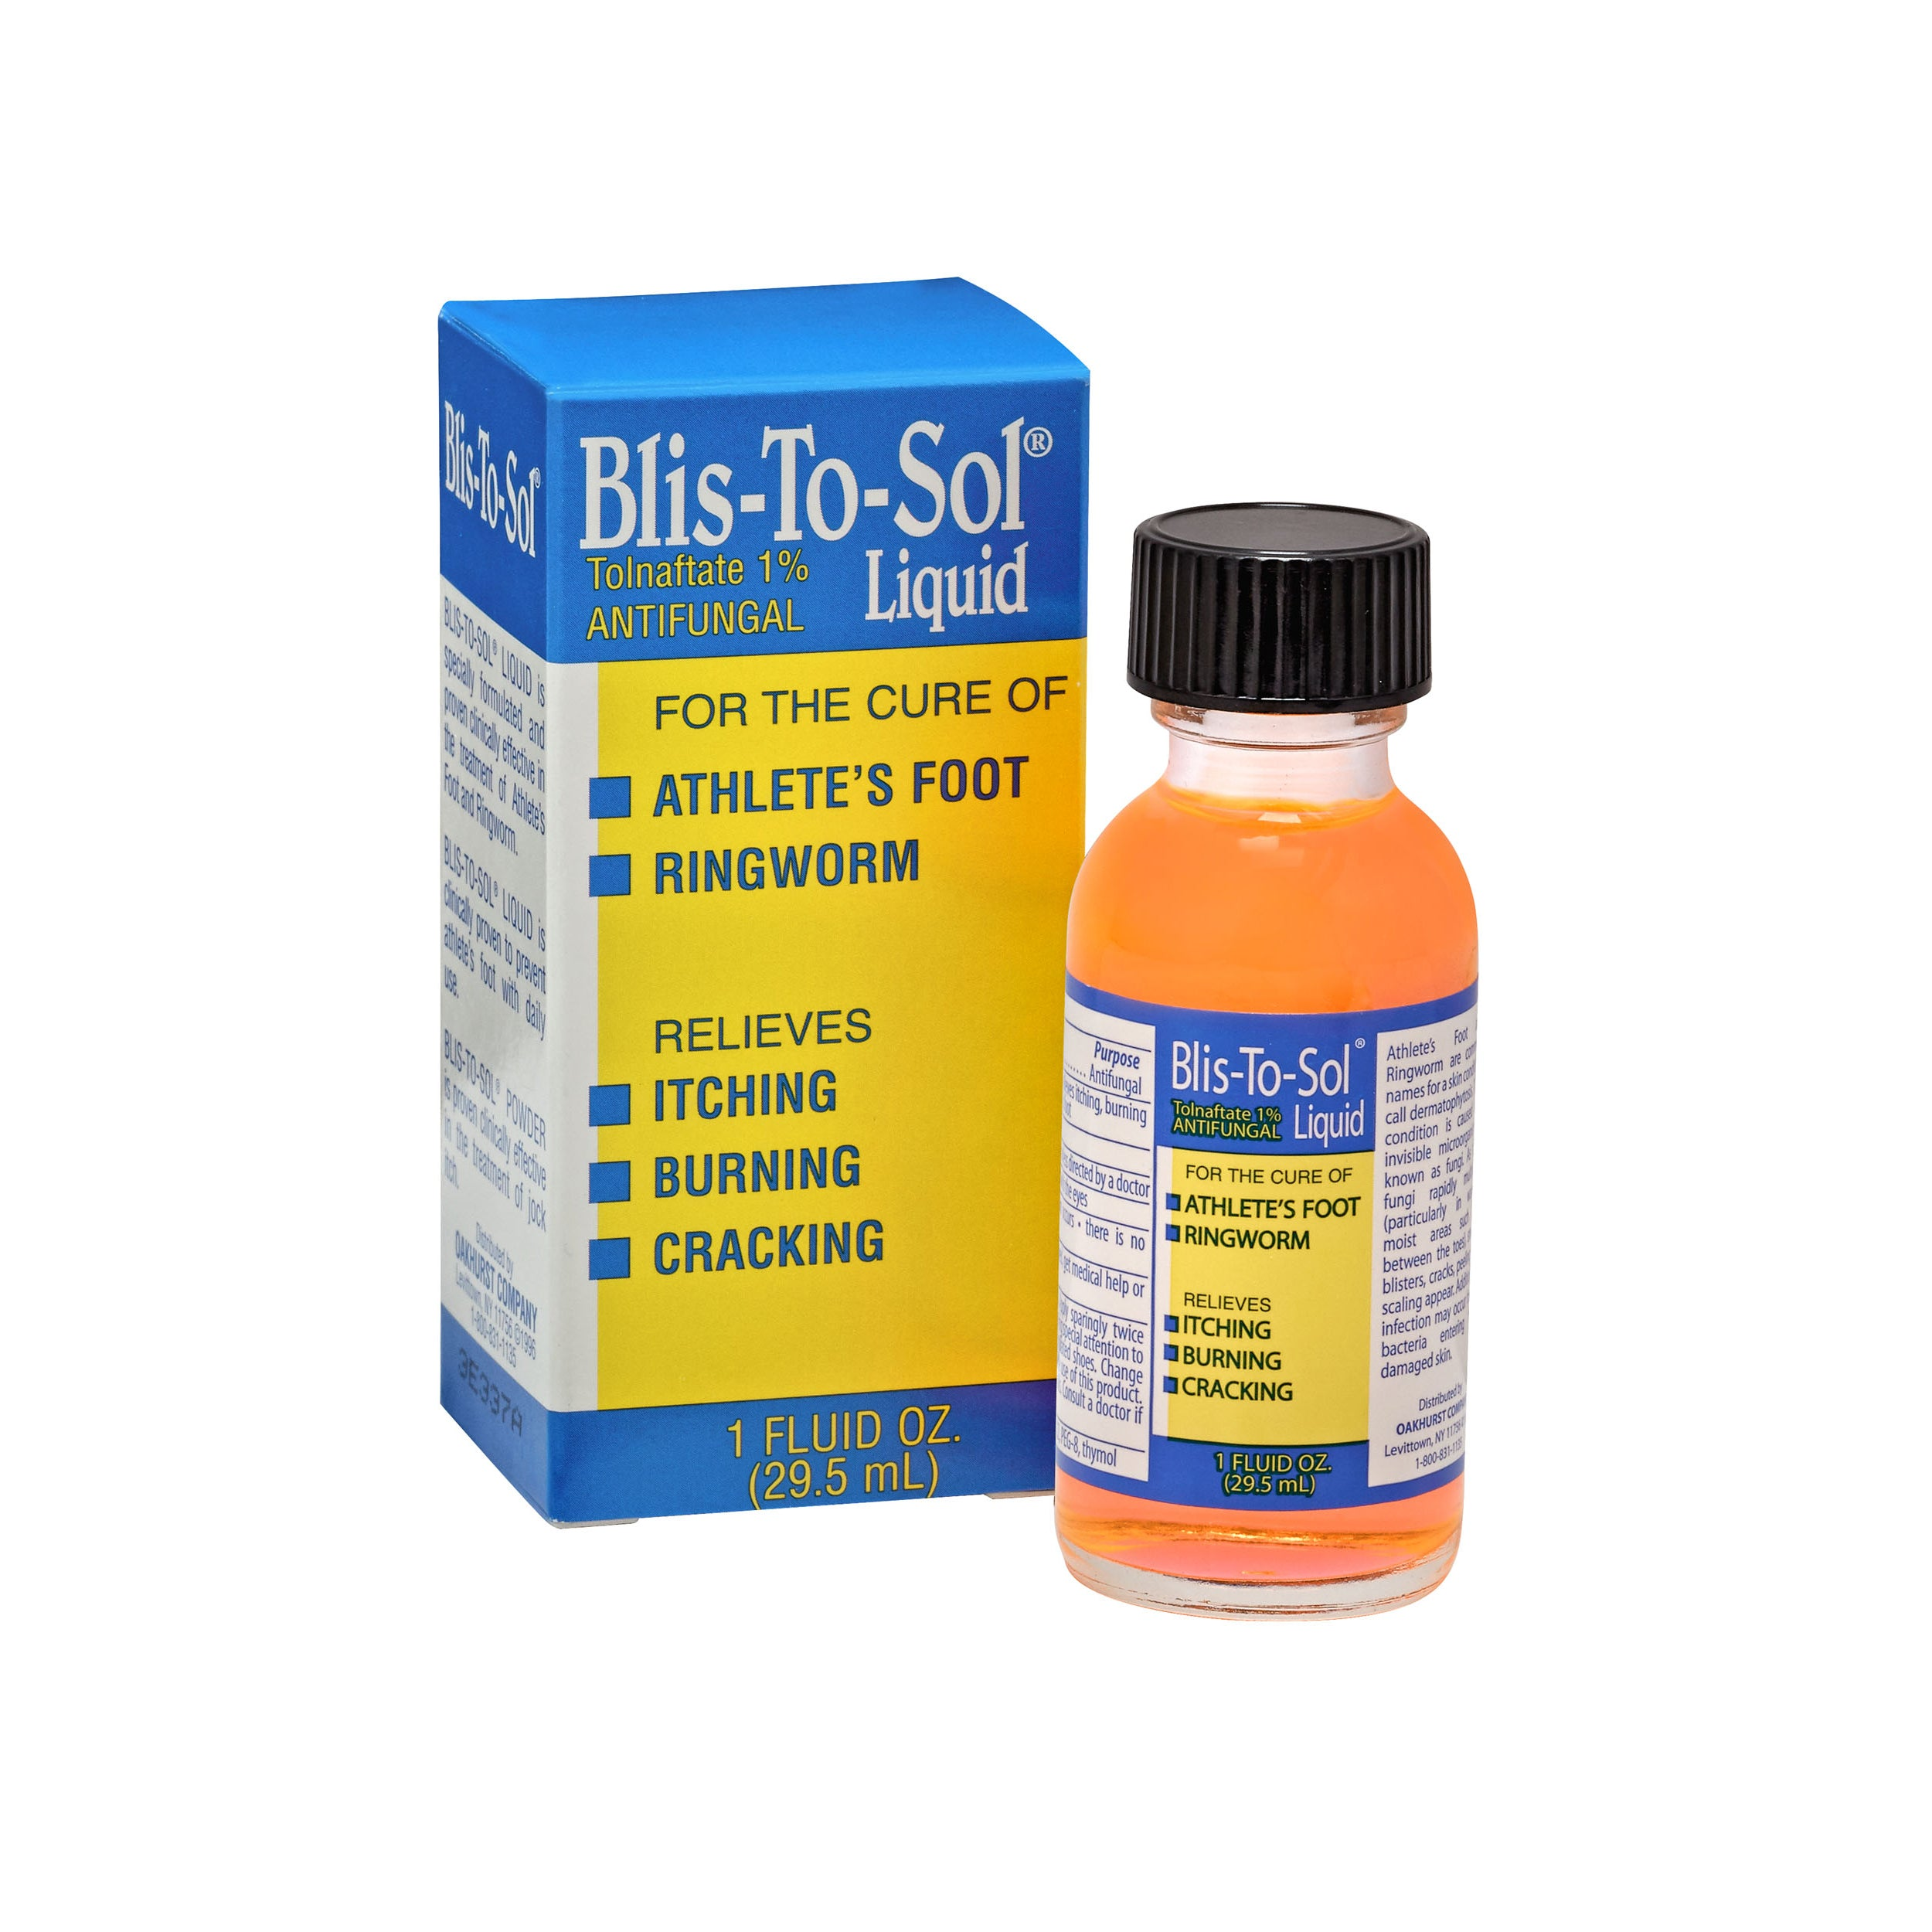 Blis-To-Sol Liquid and Powder